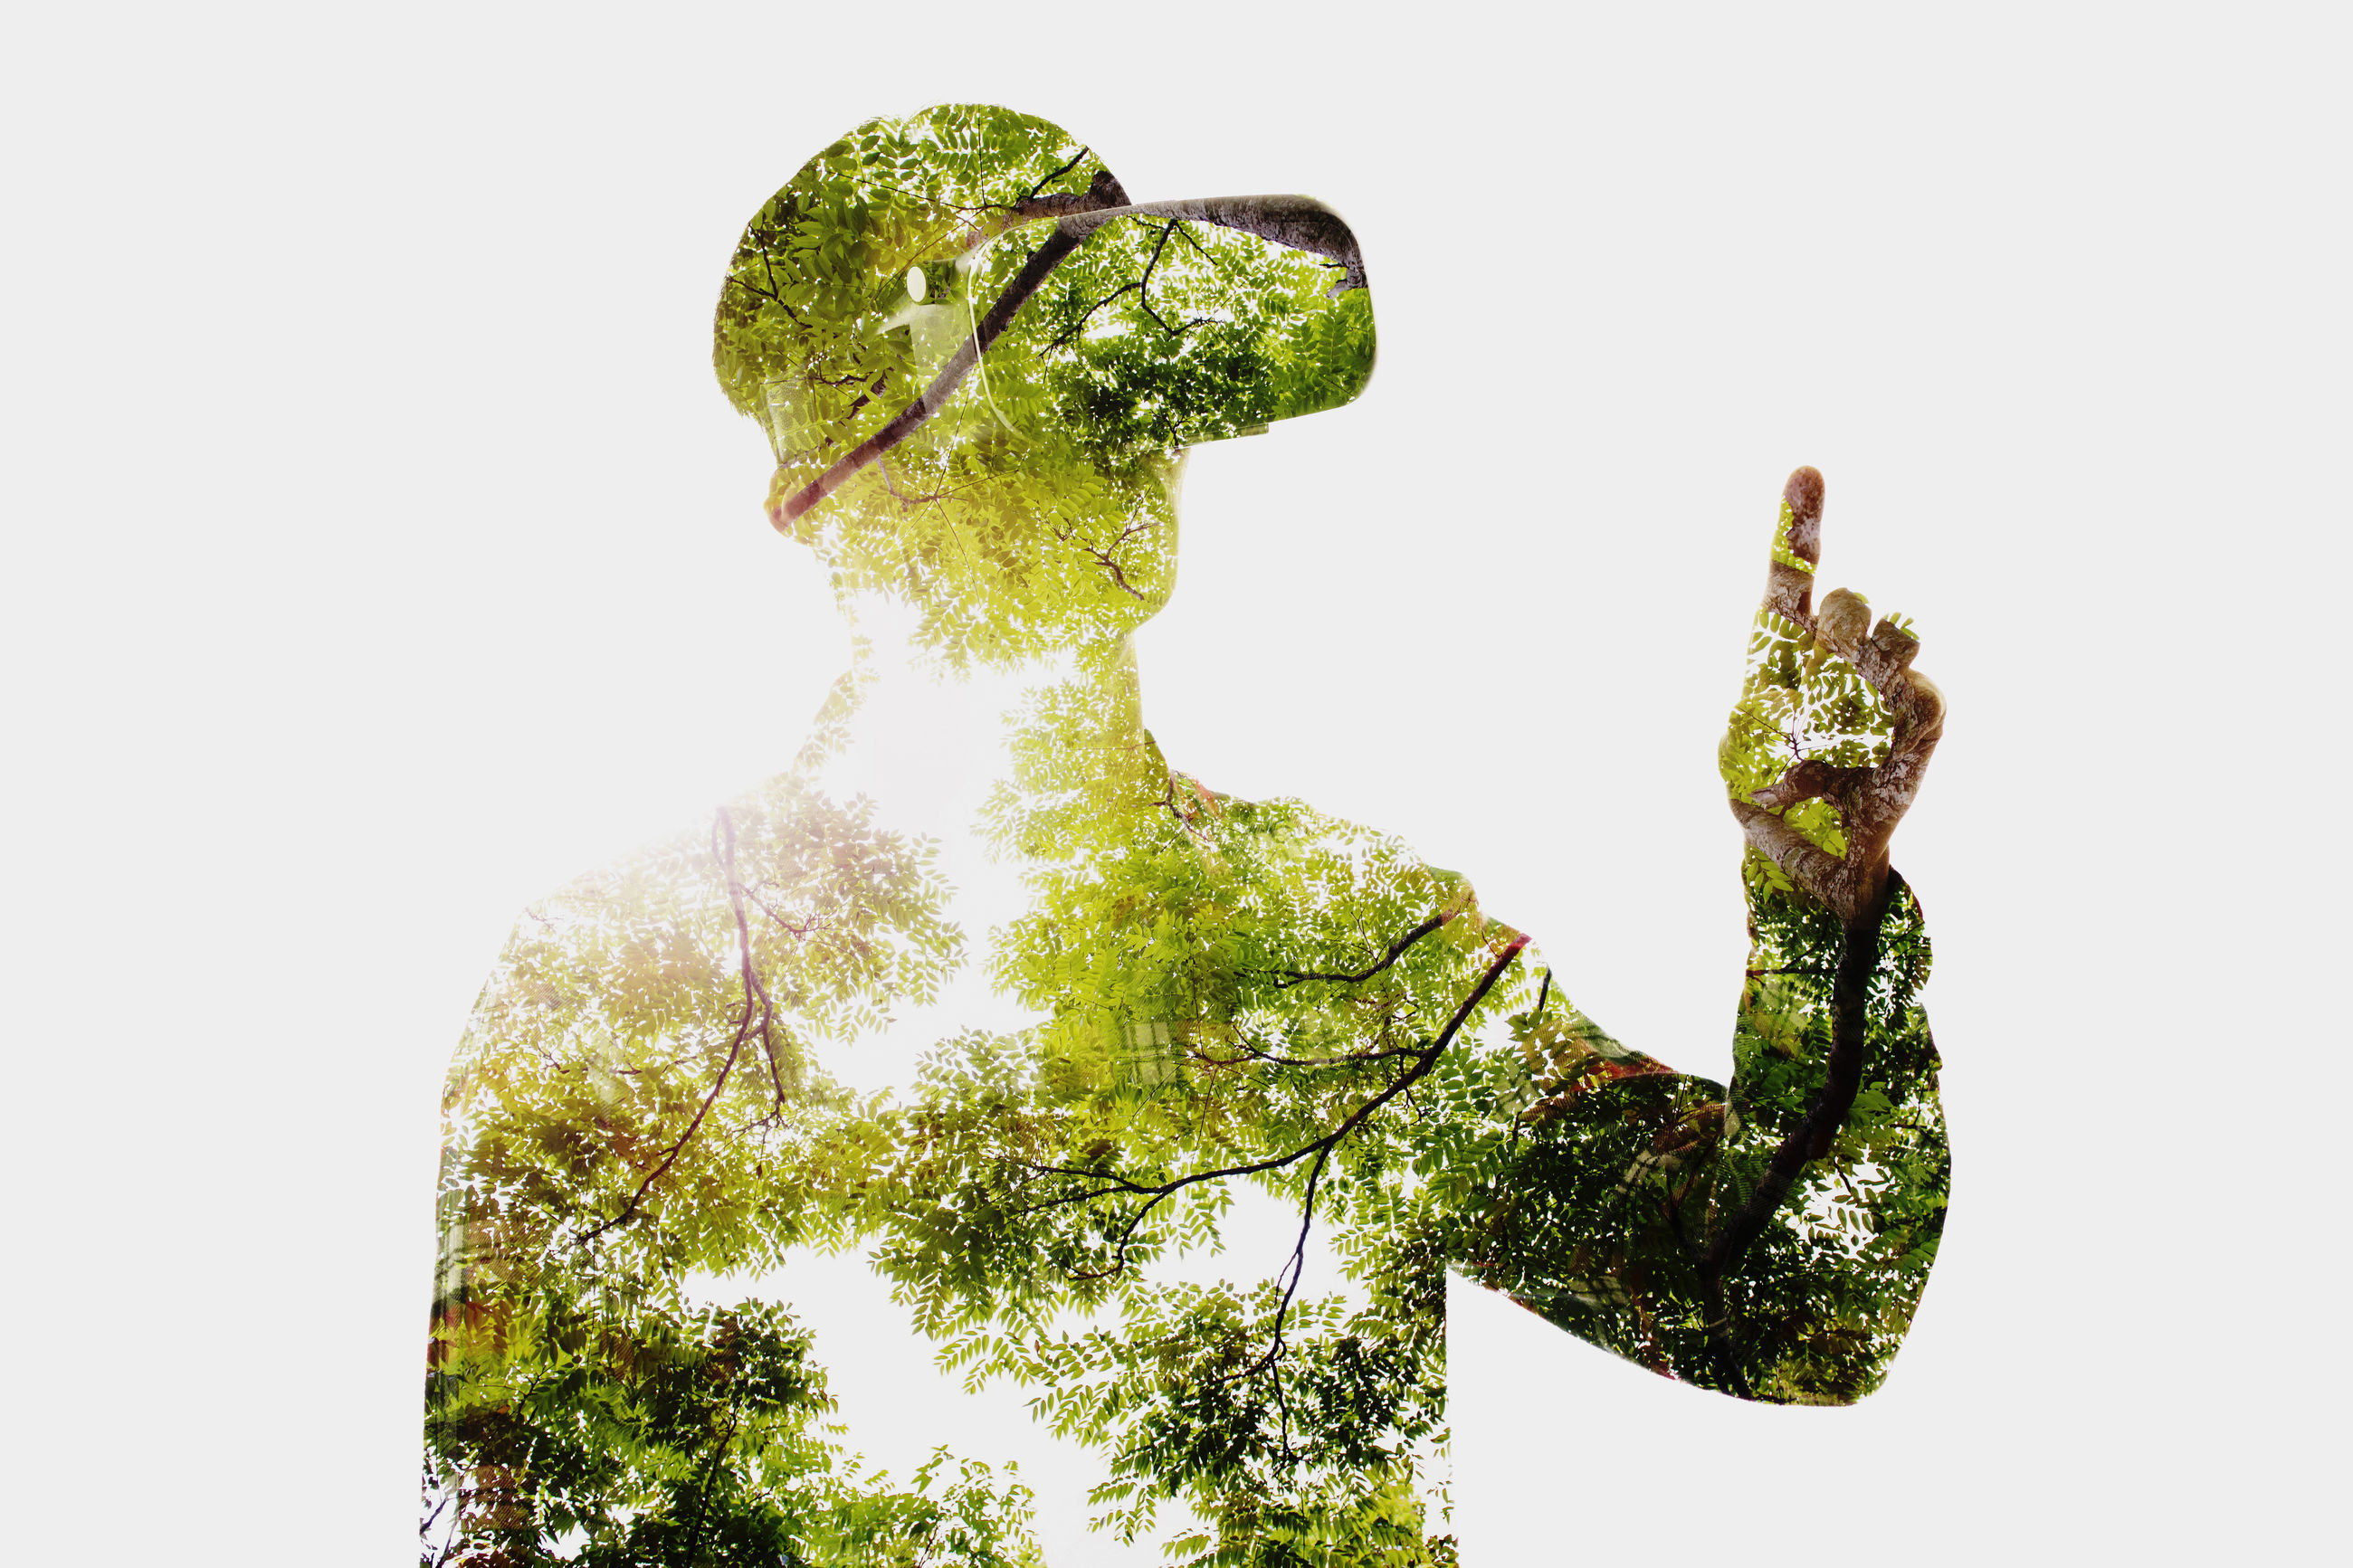 Double exposure of gesturing man and trees against white background